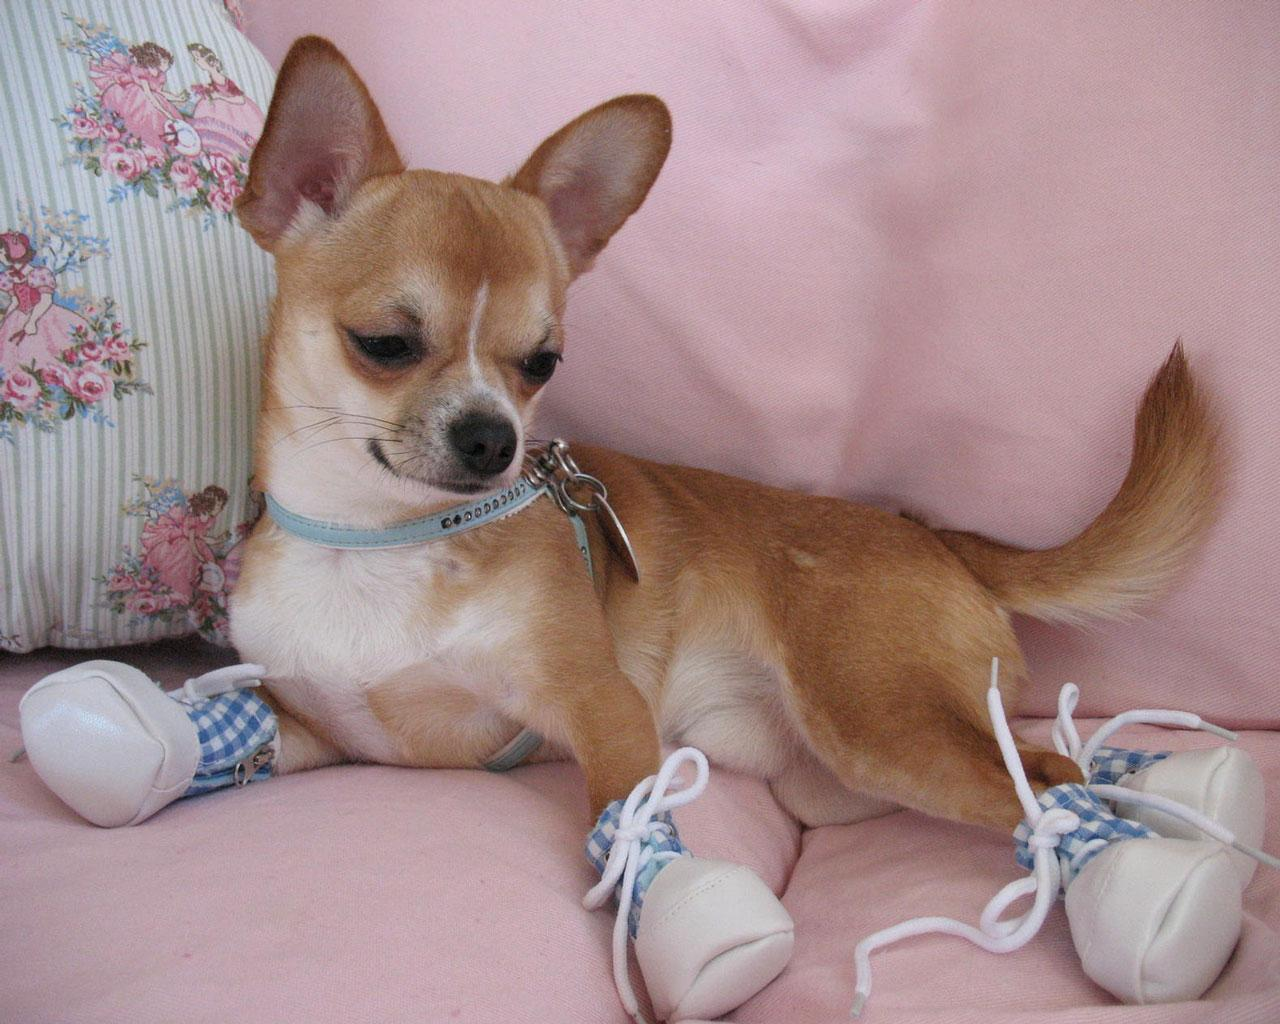 chihuahua with booties 1280x1024 wallpaper 1 more chihuahua wallpapers